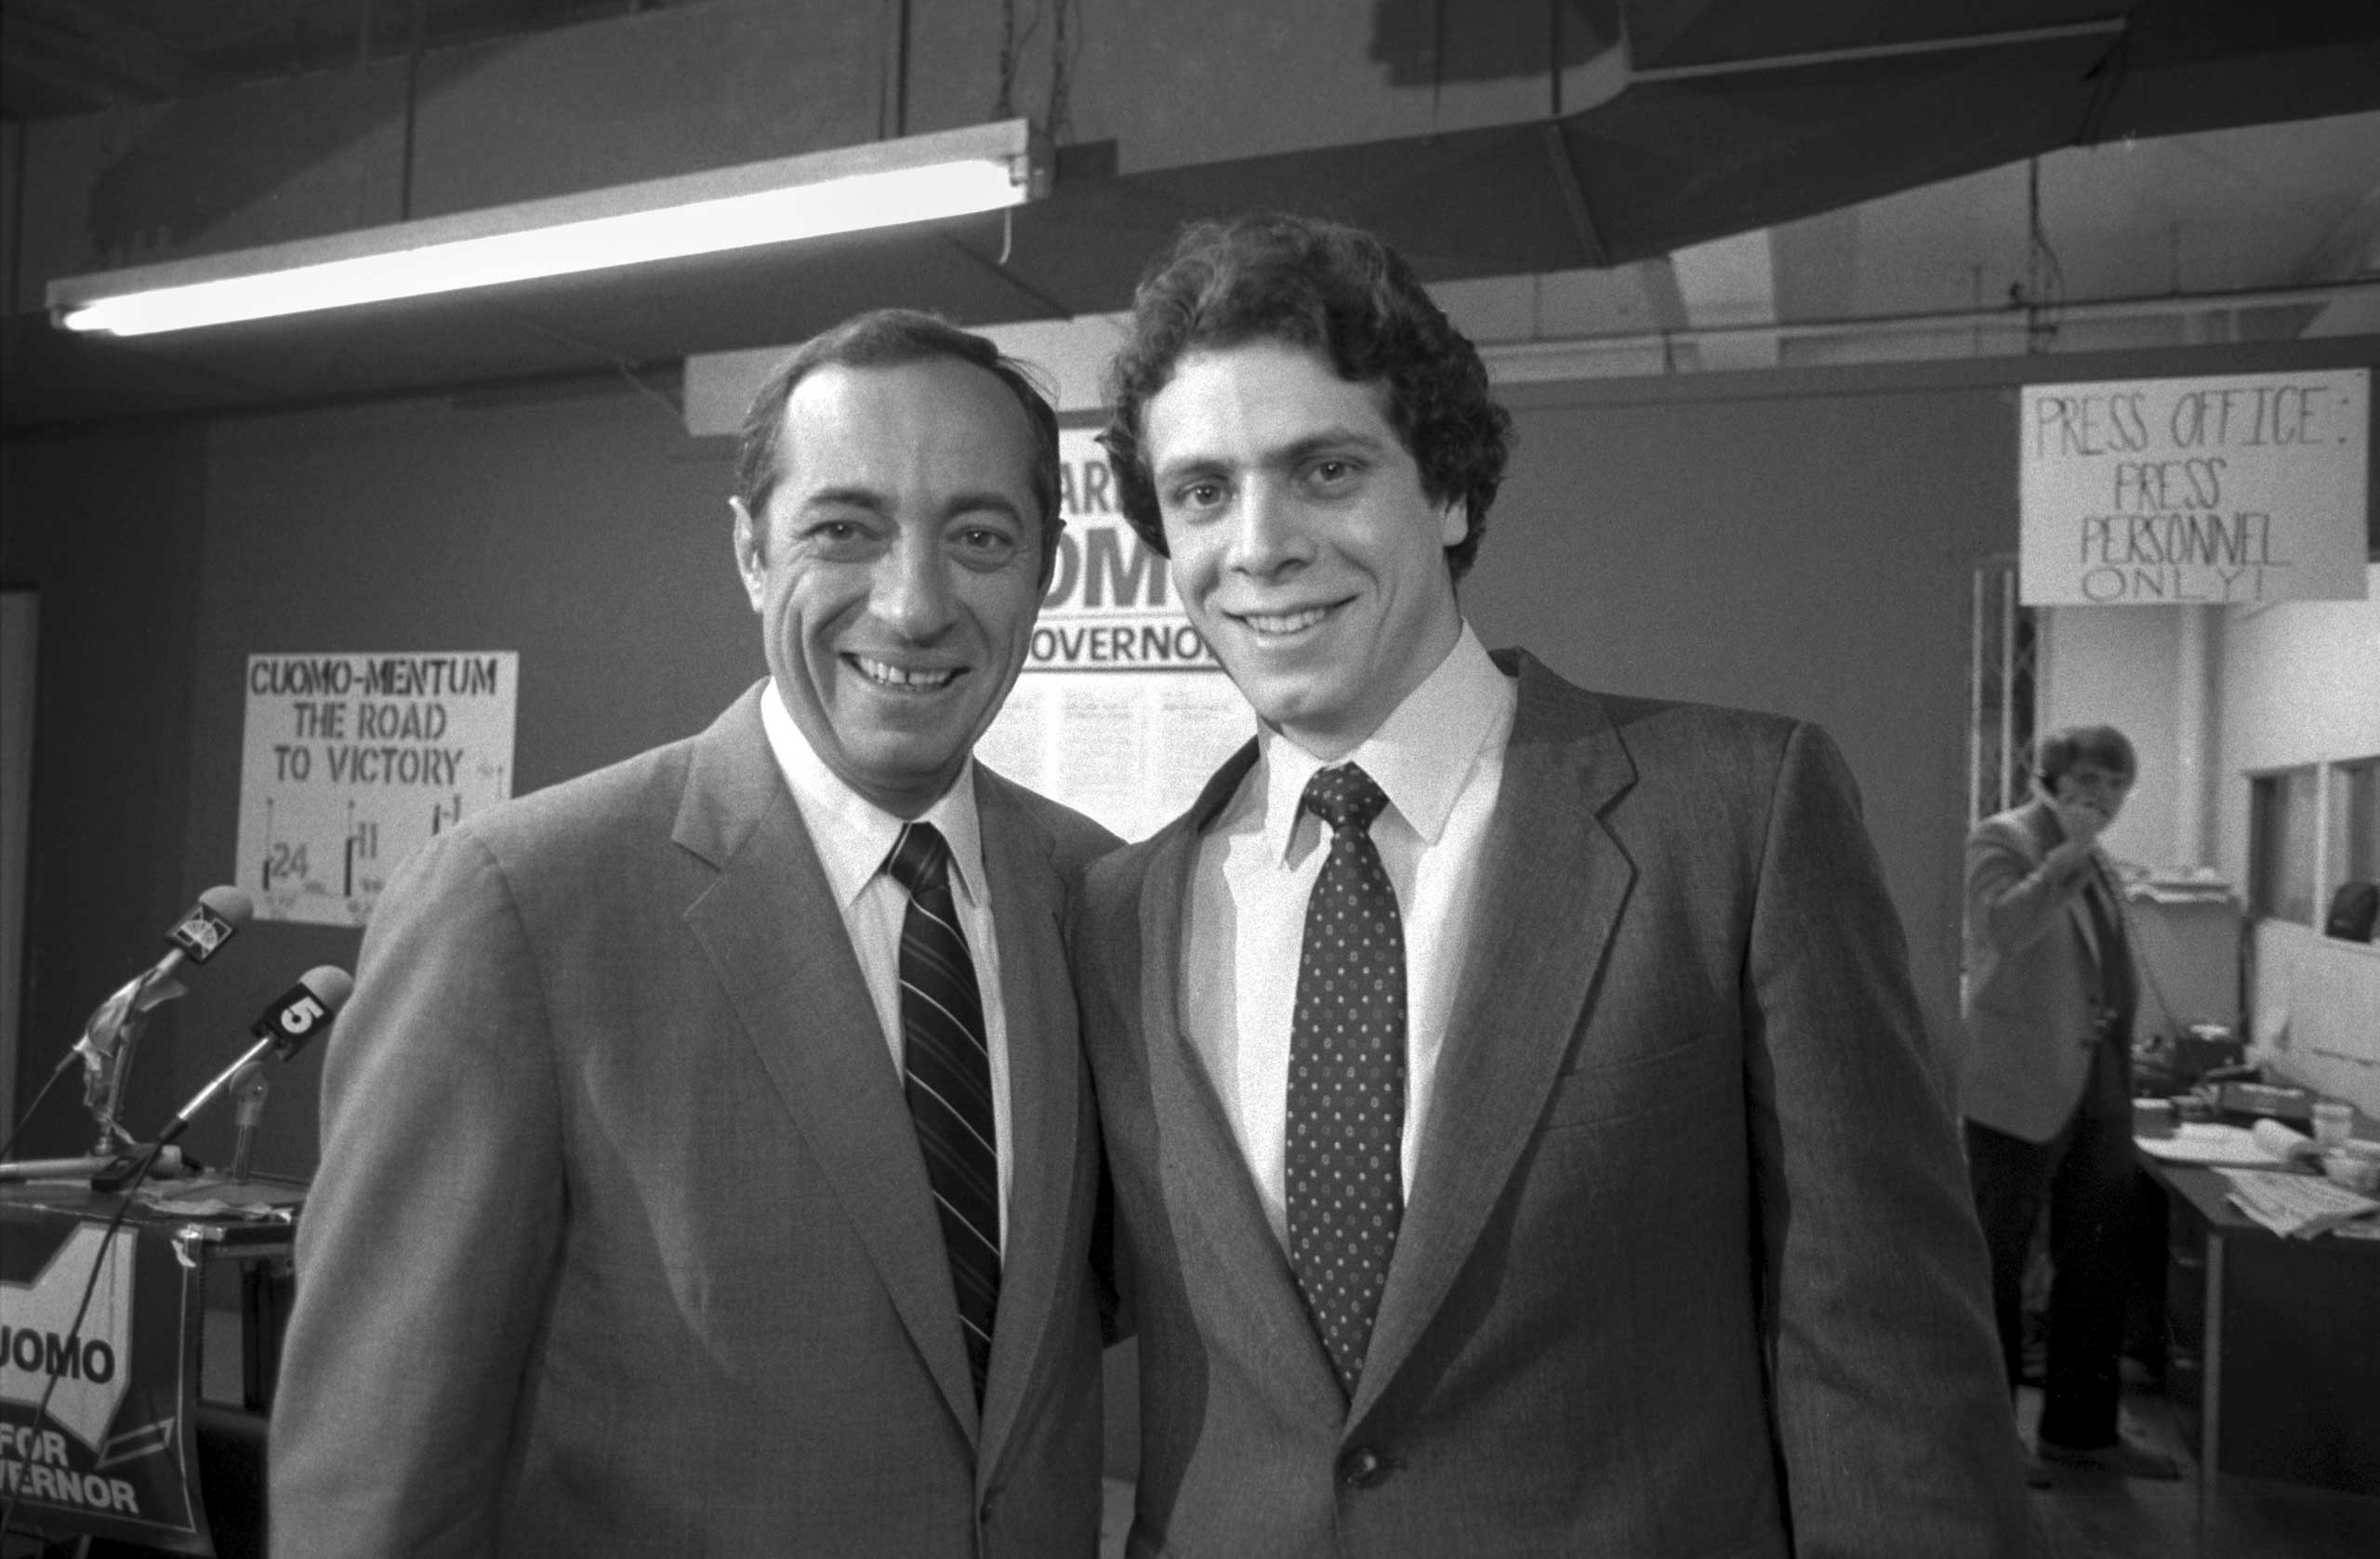 Andrew Cuomo, right, with Mario Cuomo, during his father's first campaign for governor of New York, Sept. 24, 1982.